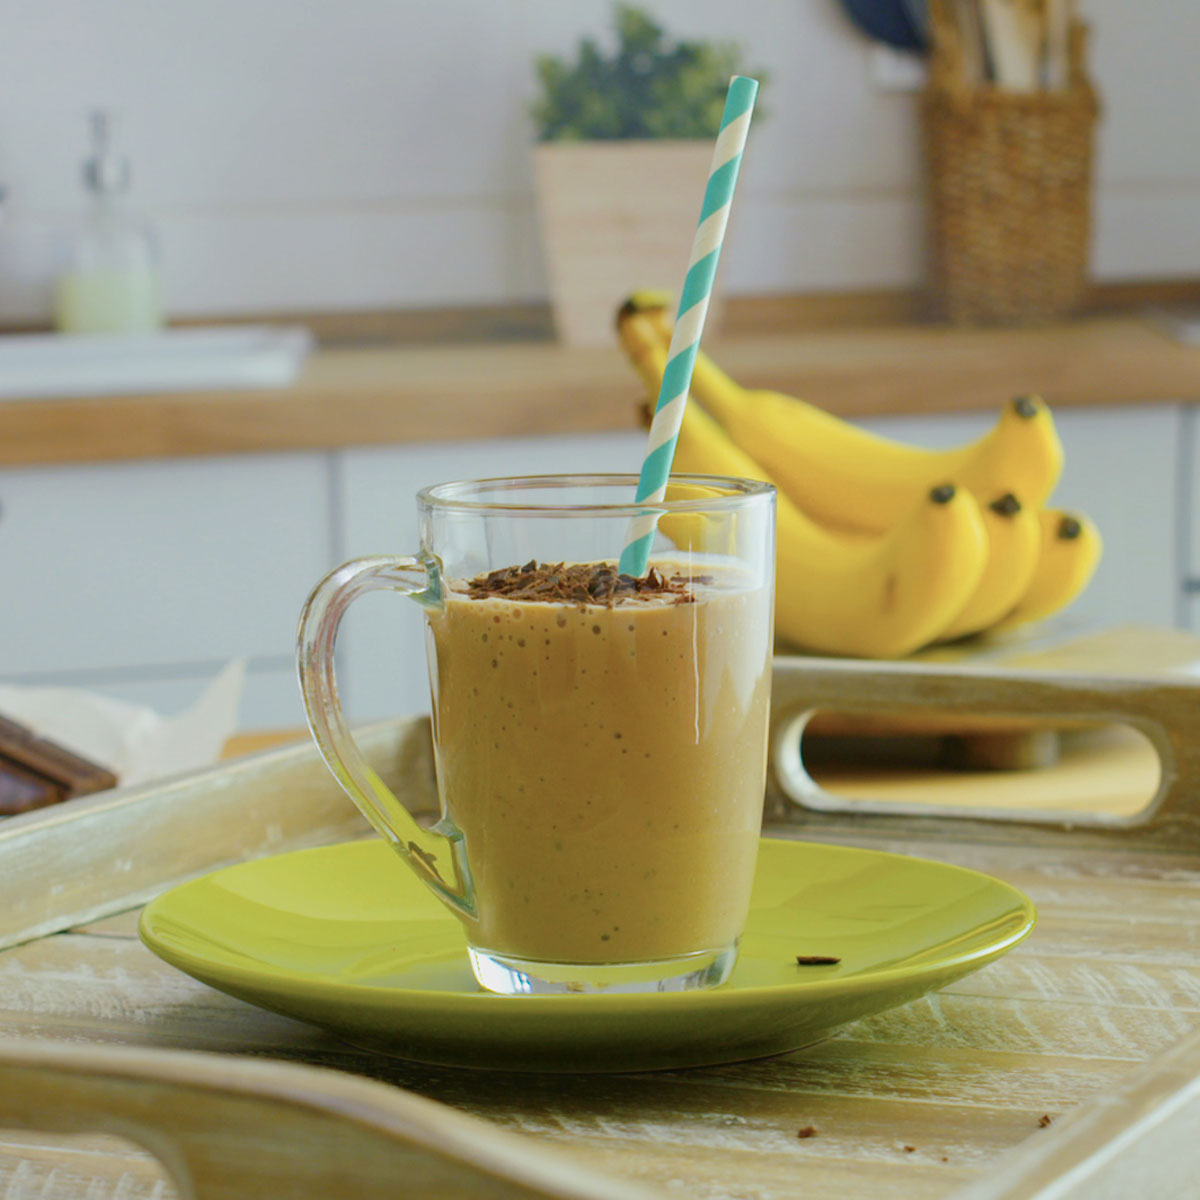 mocha latte smoothie on a kitchen counter